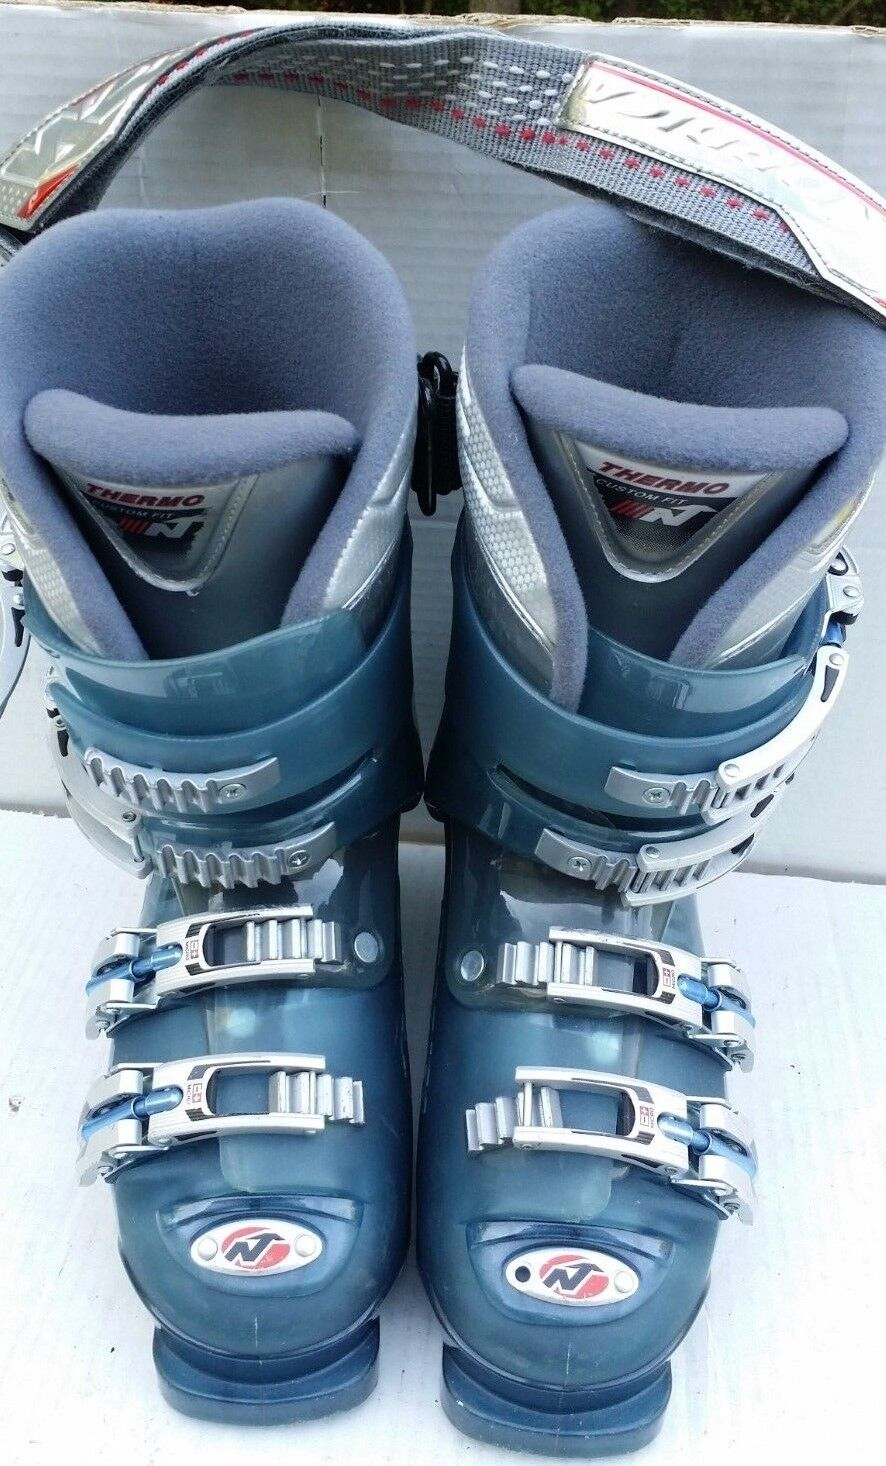 Nordica Olympia Beast 10 Downhill Ski Boots Size 23.0 – 23.5